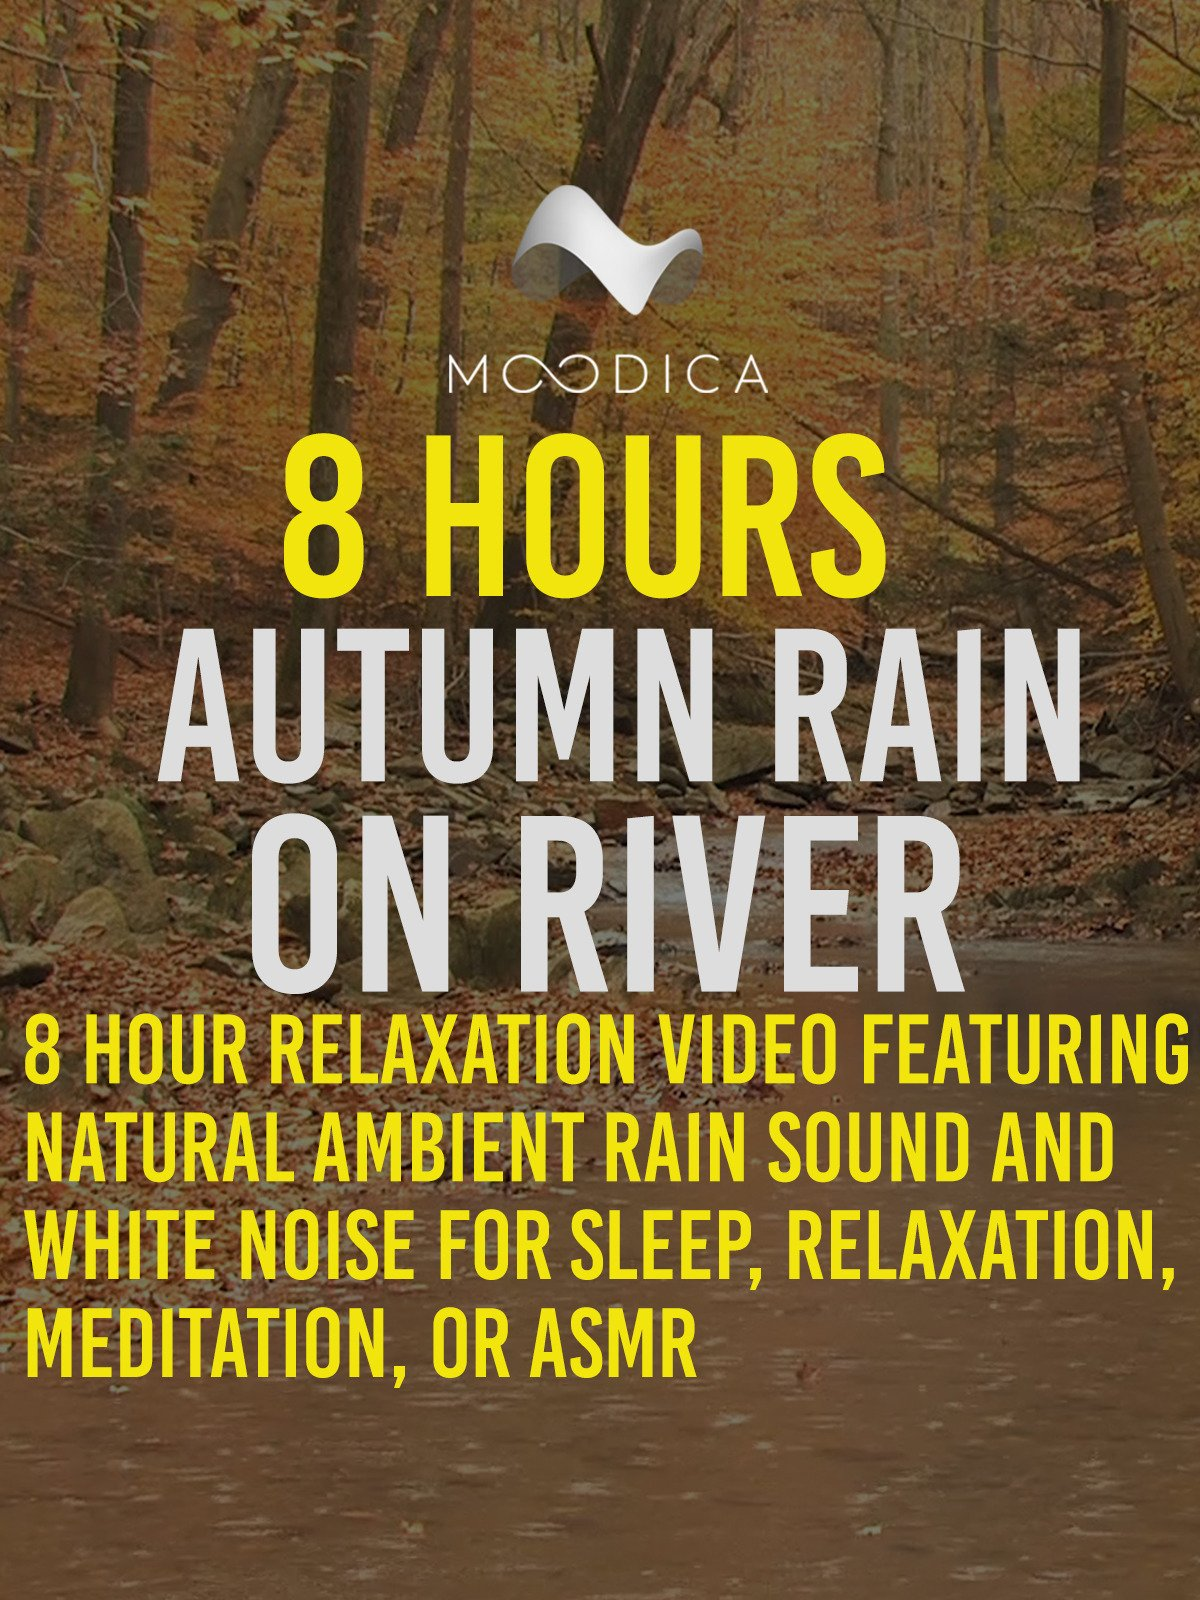 8 Hours: Autumn Rain On River: 8 Hour Relaxation Video Featuring Natural Ambient Rain Sound and White Noise for Sleep, Relaxation, Meditation or ASMR